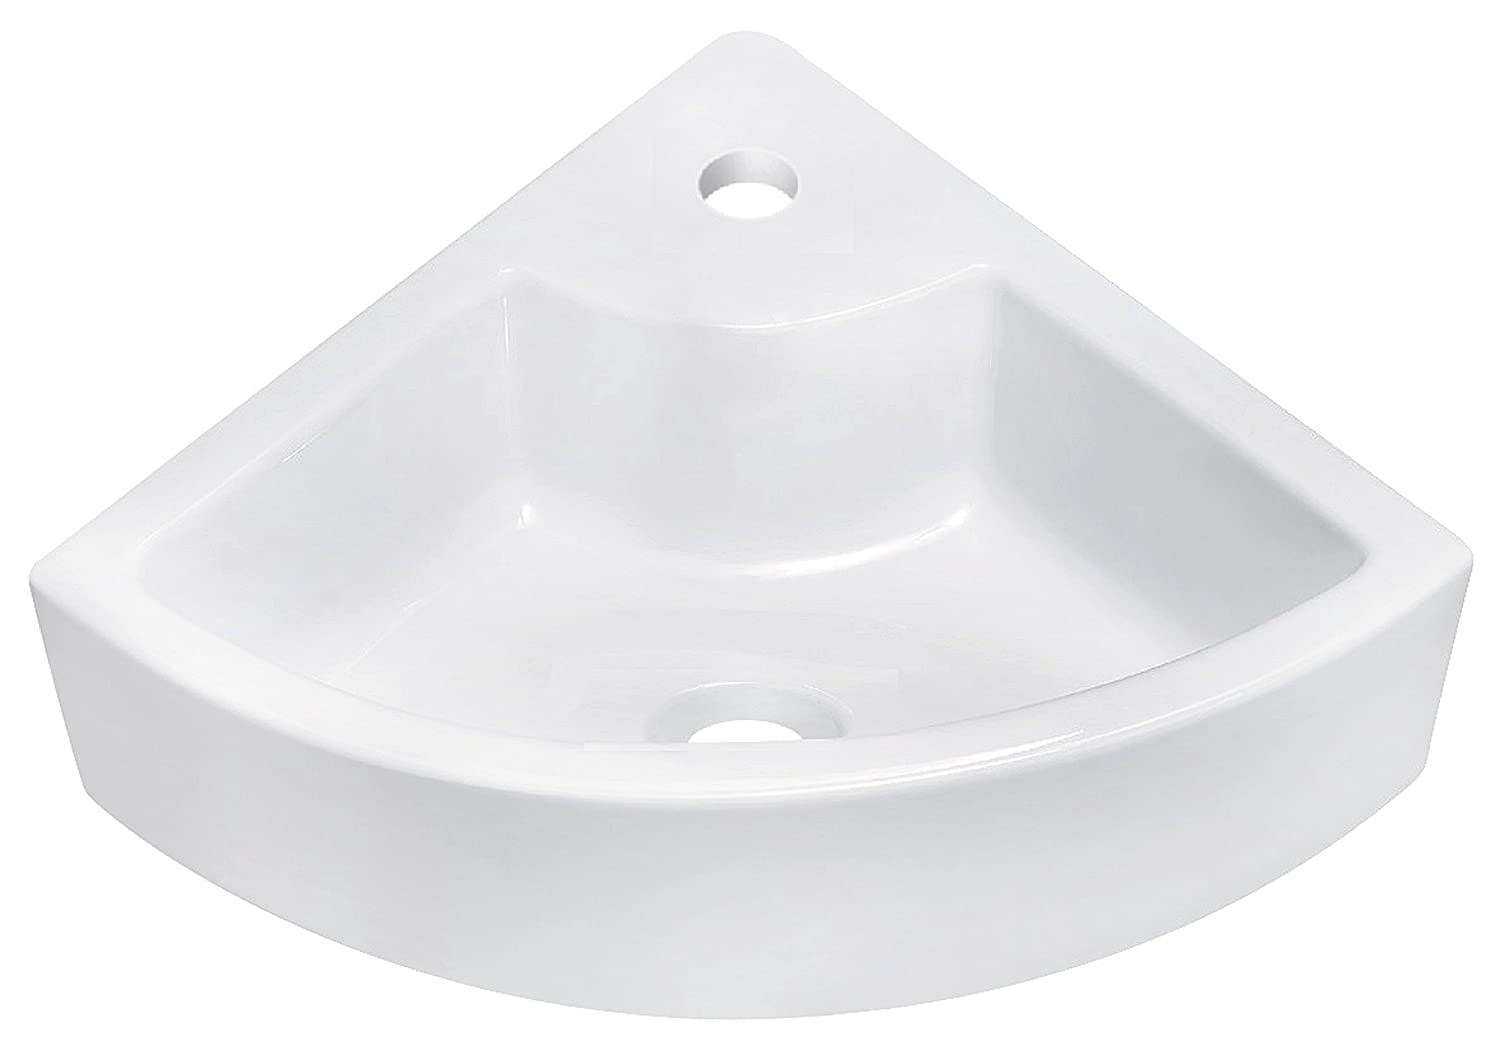 American Imaginations AI-16-367 Above Counter Round Vessel for Single Hole Faucet, 19-Inch x 19-Inch, White IMG Imports Inc.